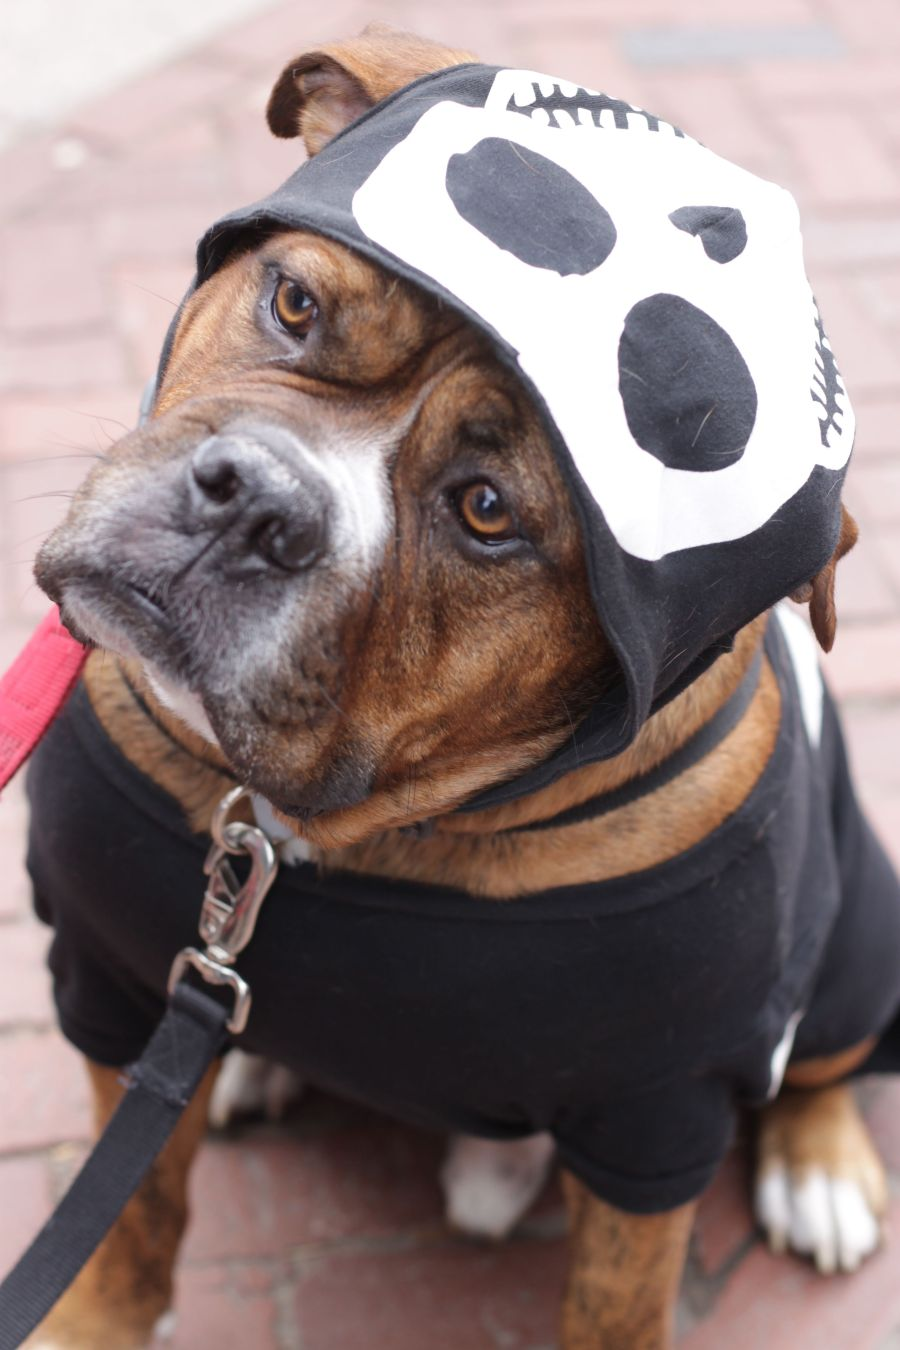 salem halloween october 31 2014 bulldog skeleton outfit